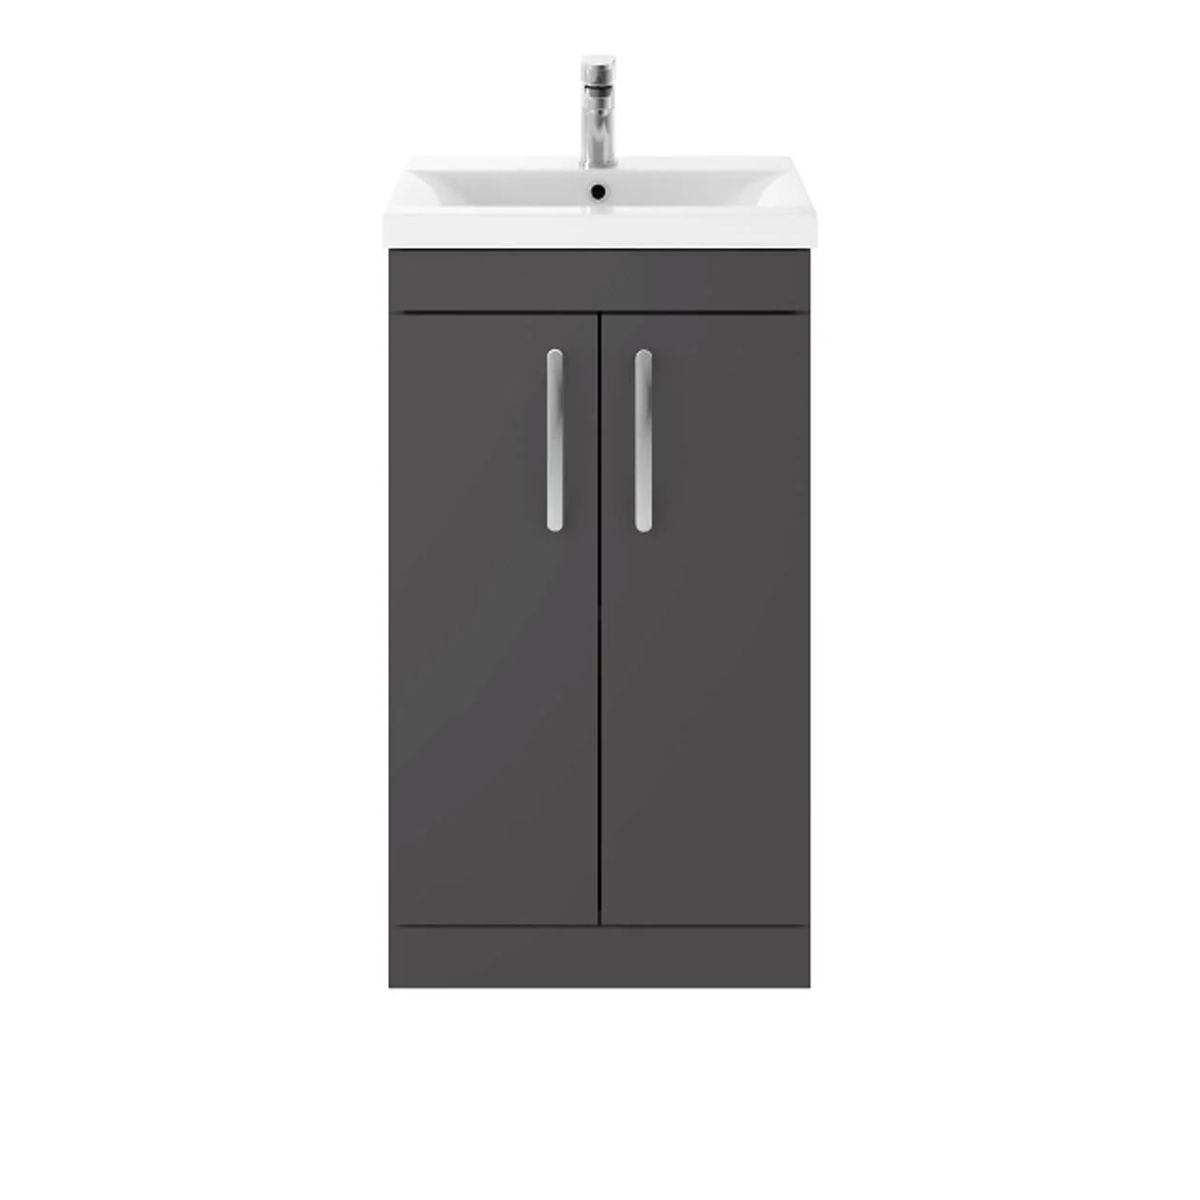 Nuie Athena Gloss Grey 2 Door Floor Standing Unit 600mm